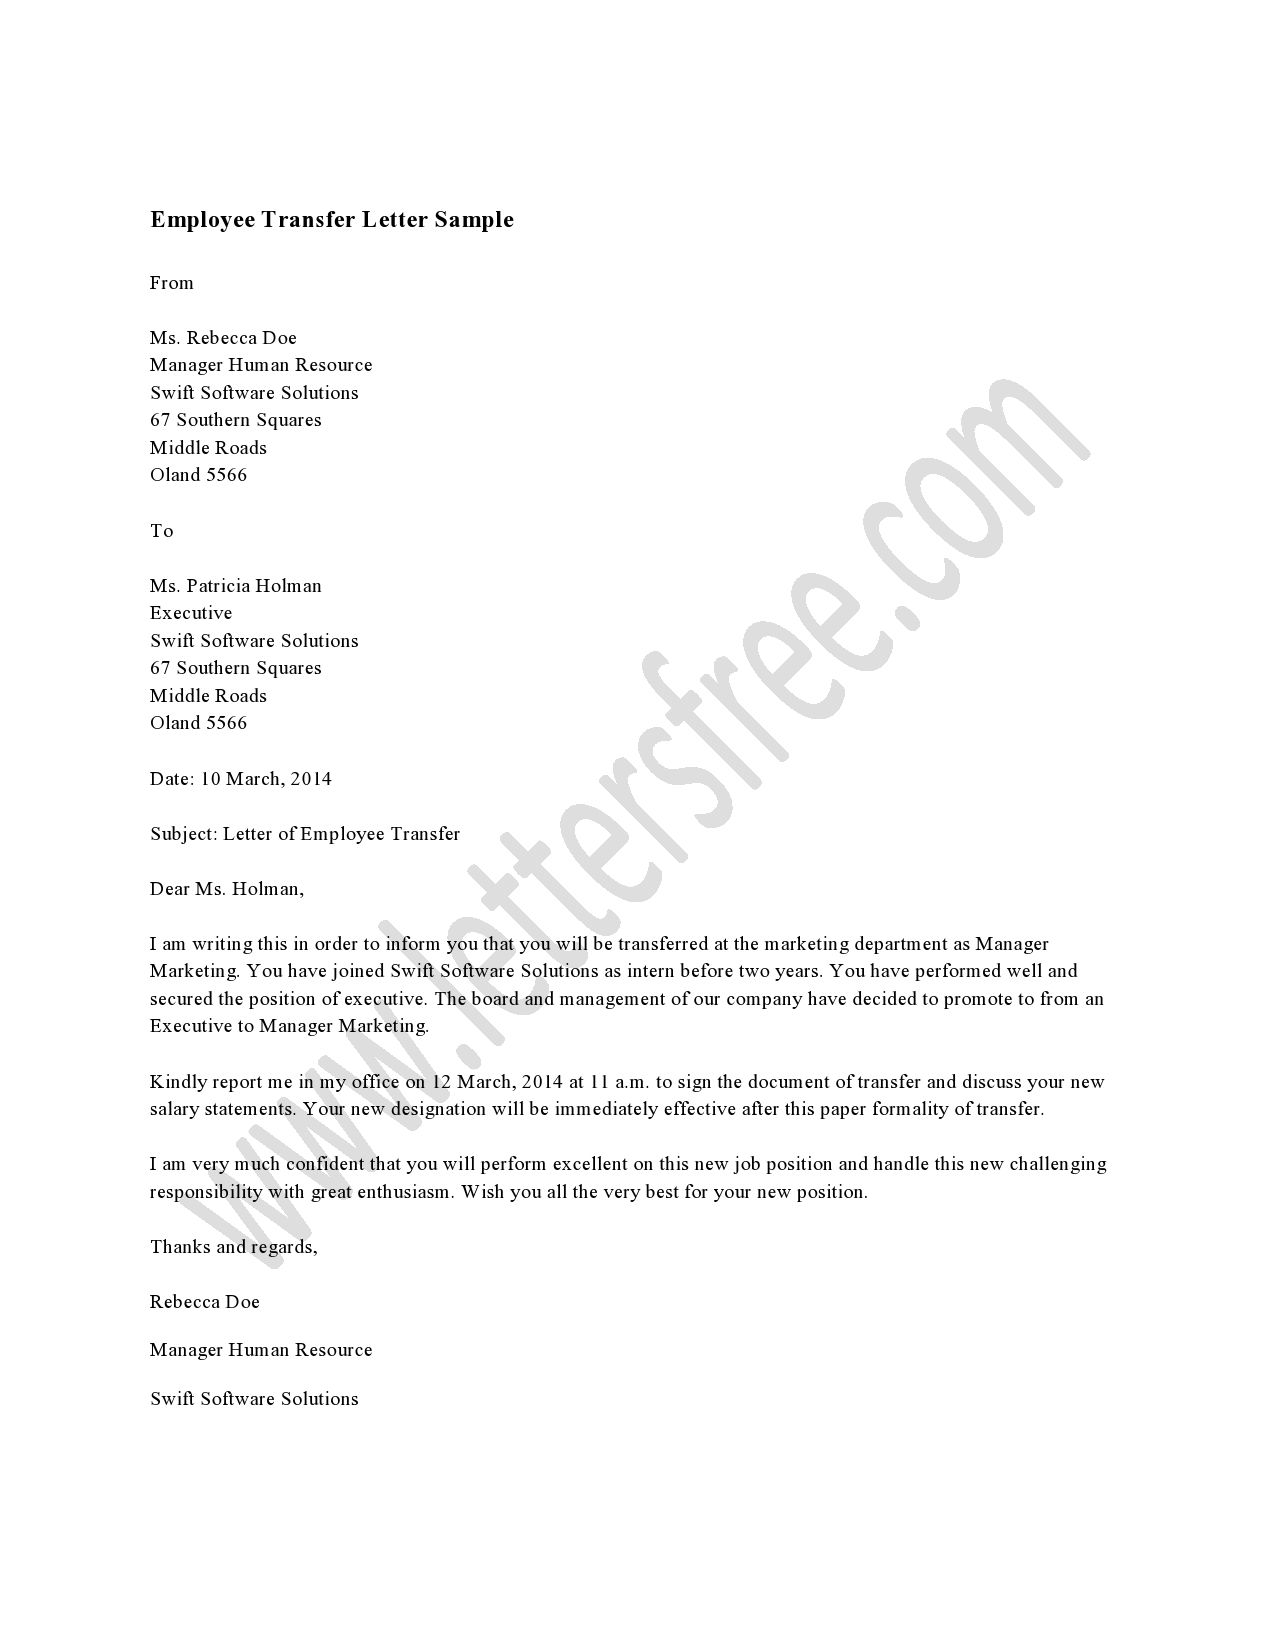 employee transfer letter is written to notify the employee about employee transfer letter is written to notify the employee about his transfer to some new location